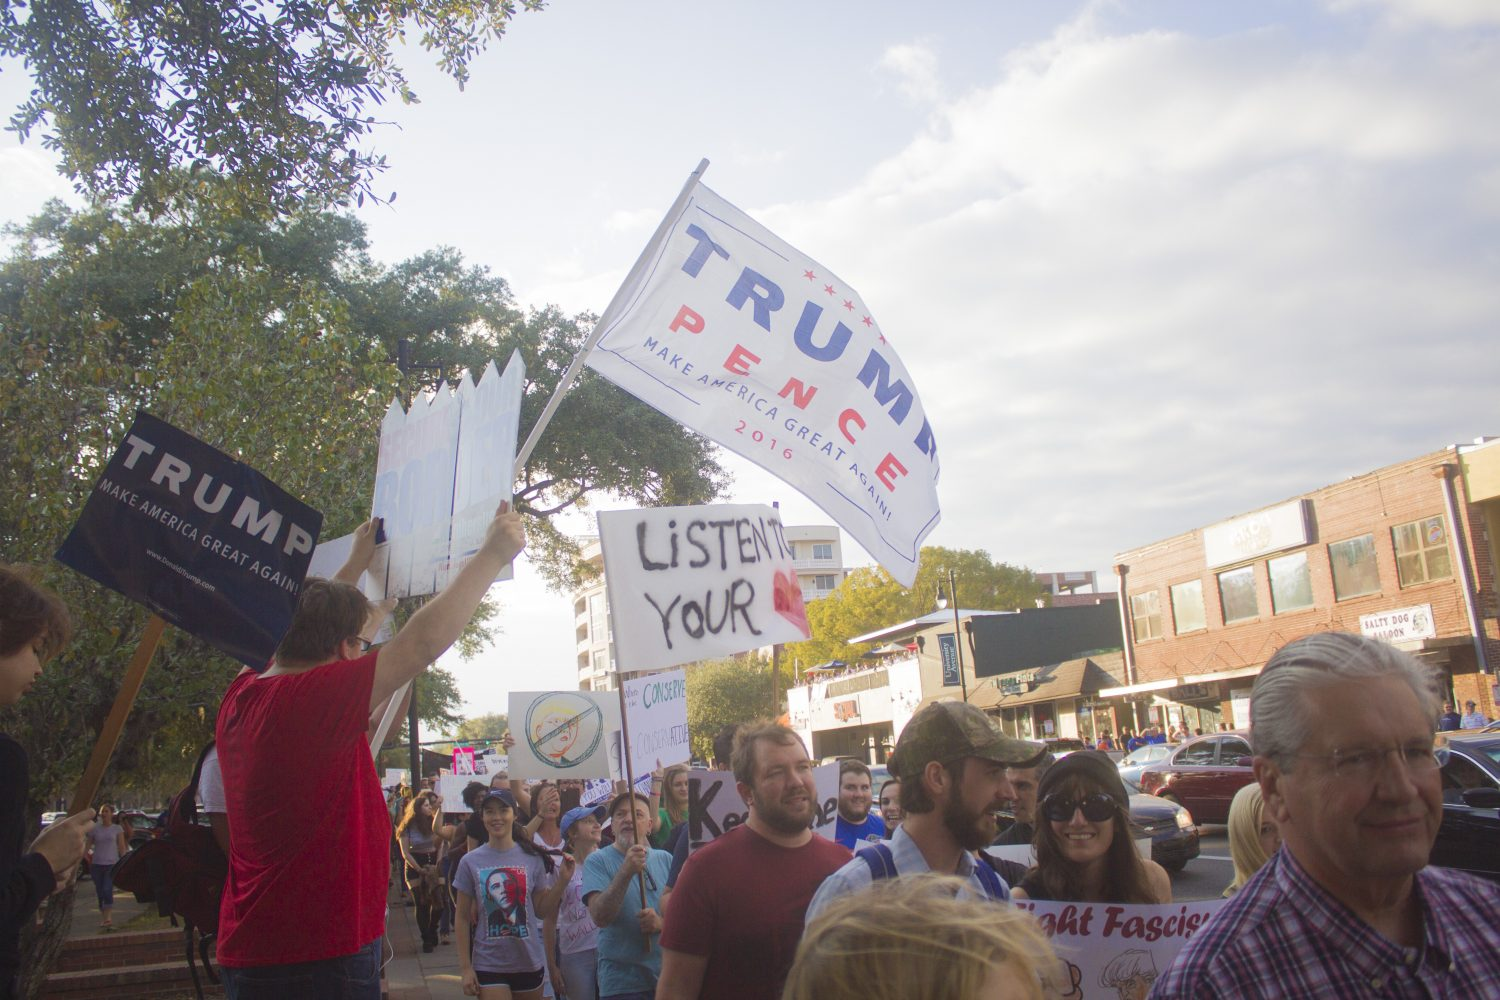 Trump supporters wave a flag and signs as the protestors pass Gainesville's Midtown area. (Michael Stone/WUFT News)